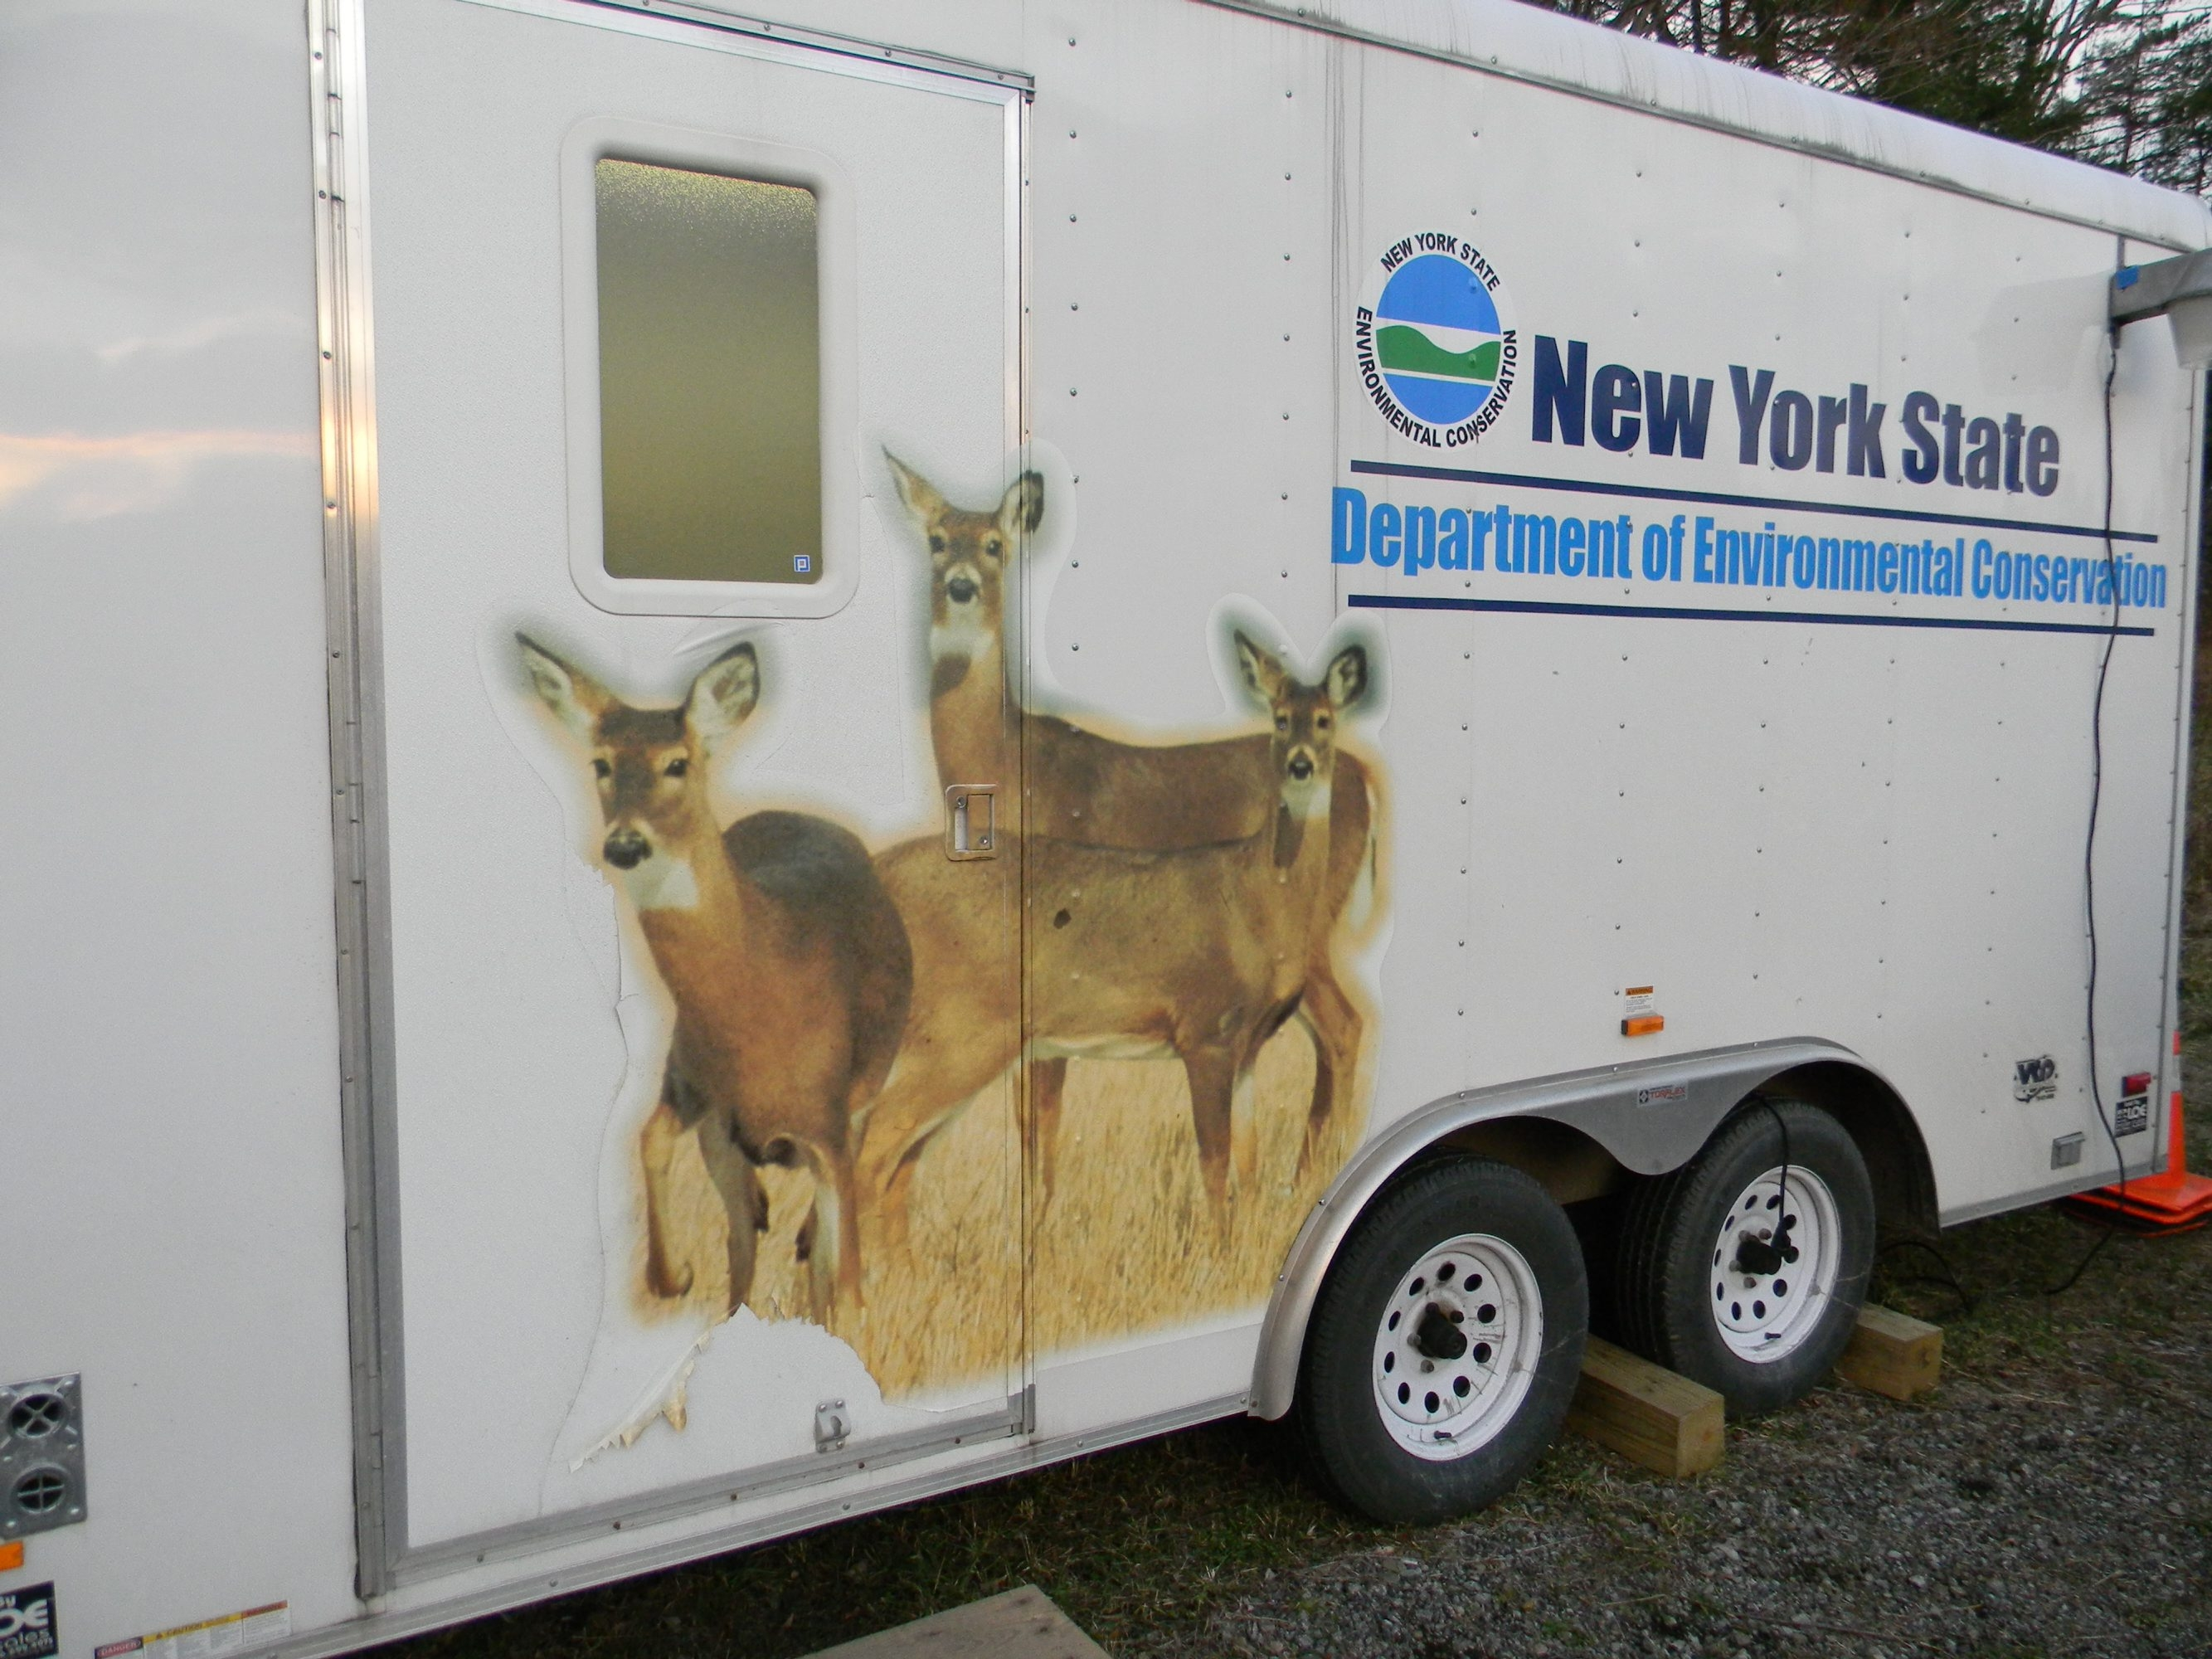 Hunters out during the start of bow hunting season will be seeing many doe deer as illustrated on a Department of Environmental Conservation check-station trailer.